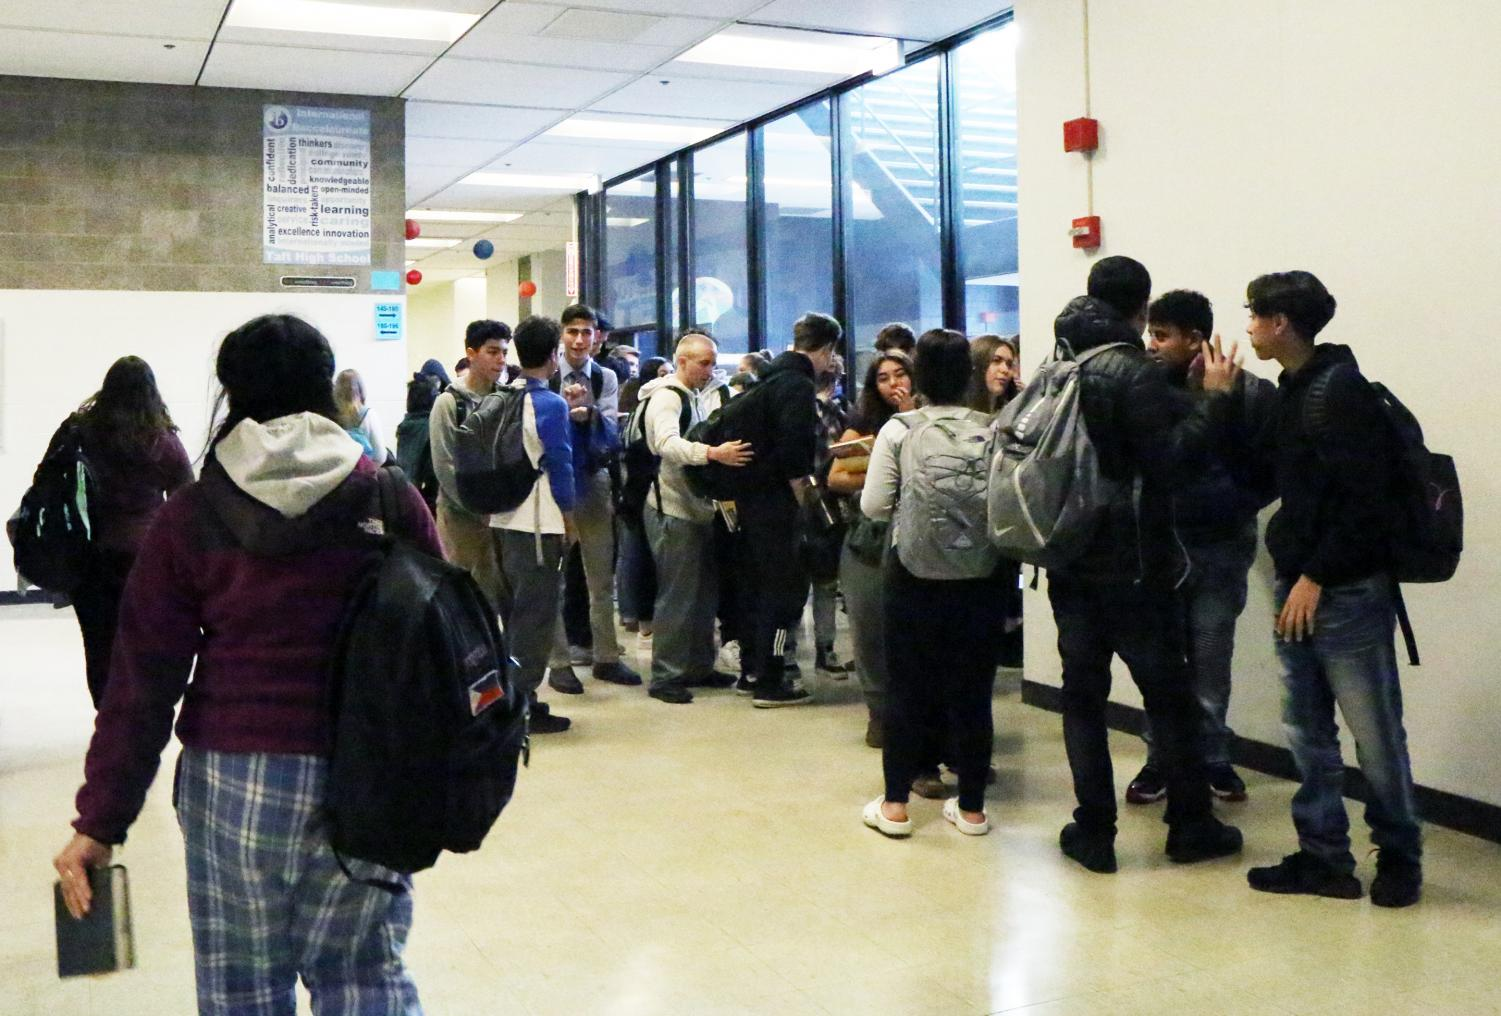 Students rush to class after hearing the late bell.